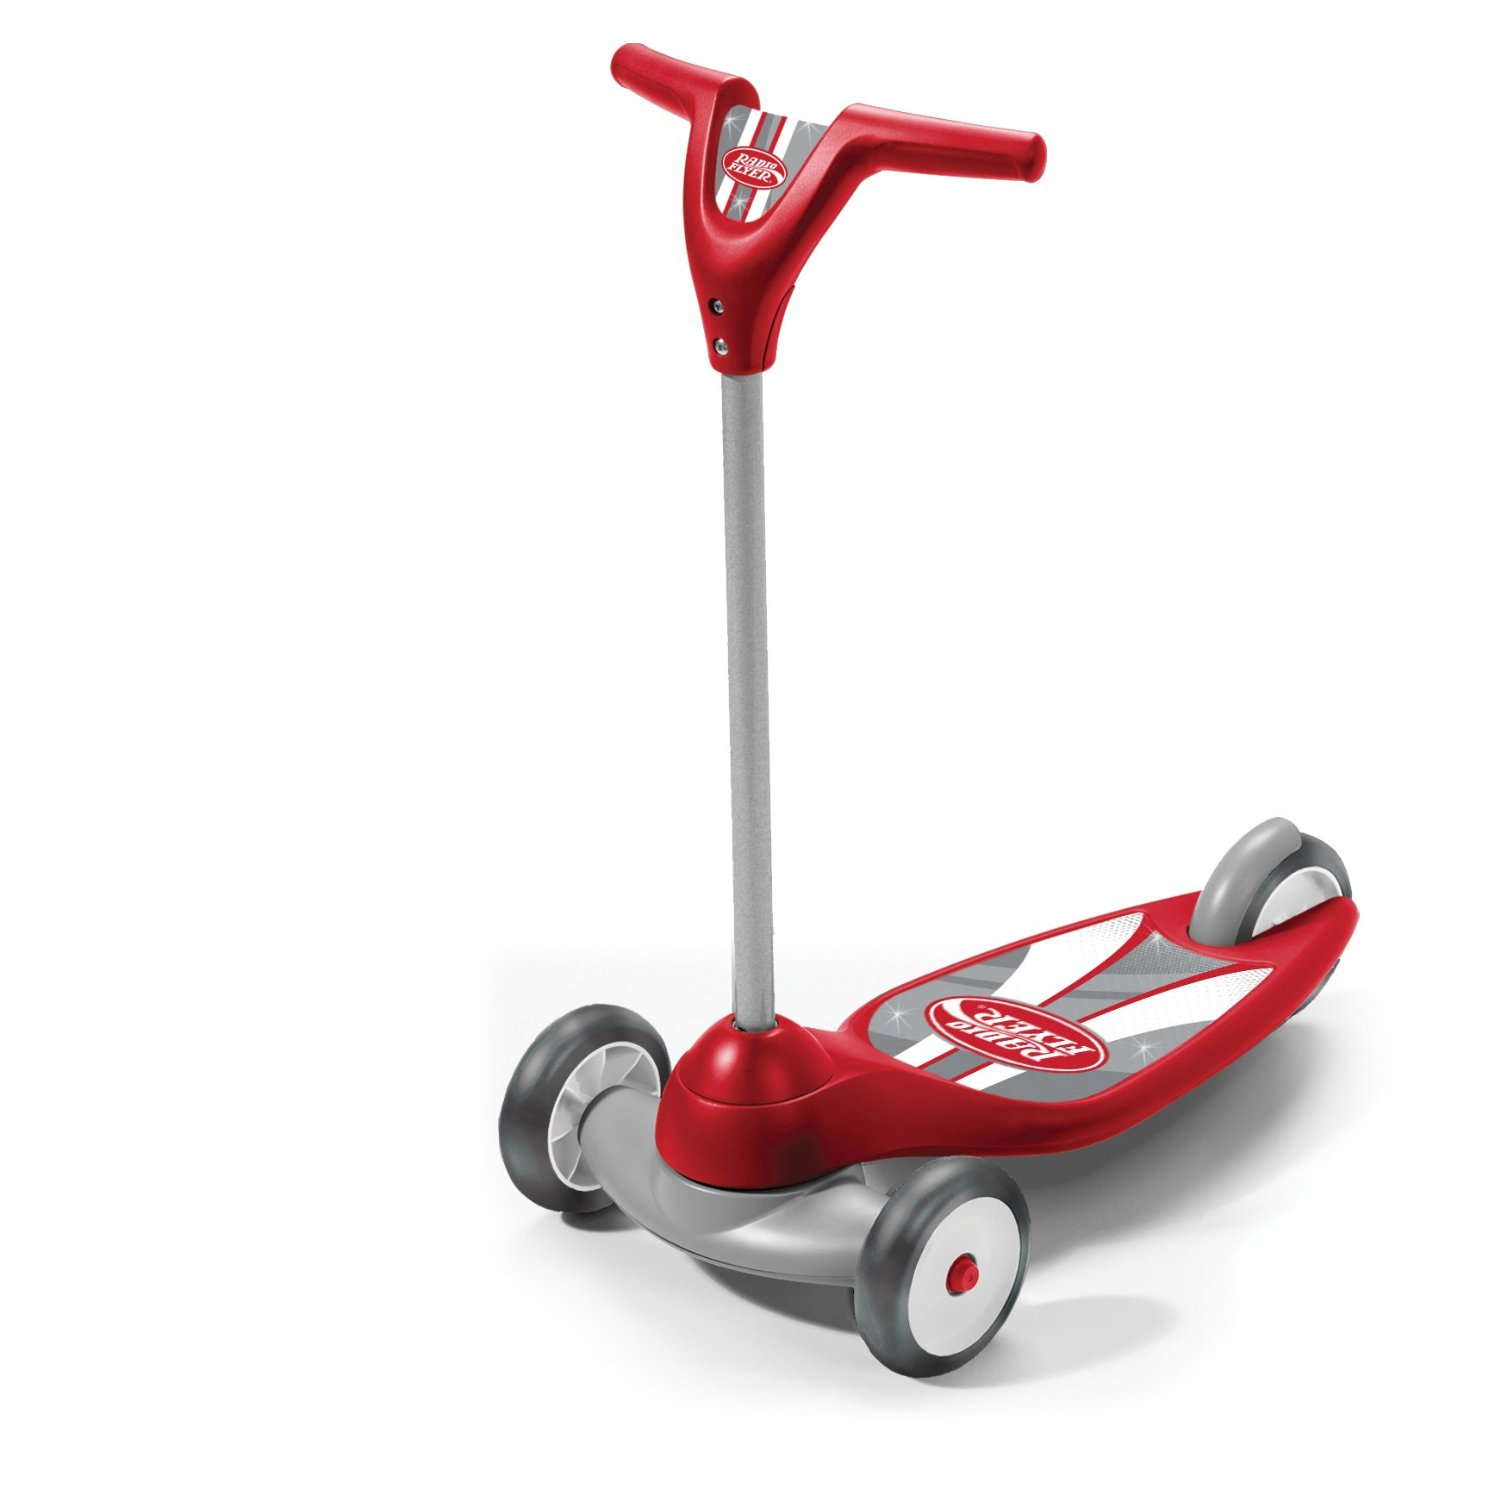 Compare Scooters for Kids, Teens. Kick, Electric, Gas.